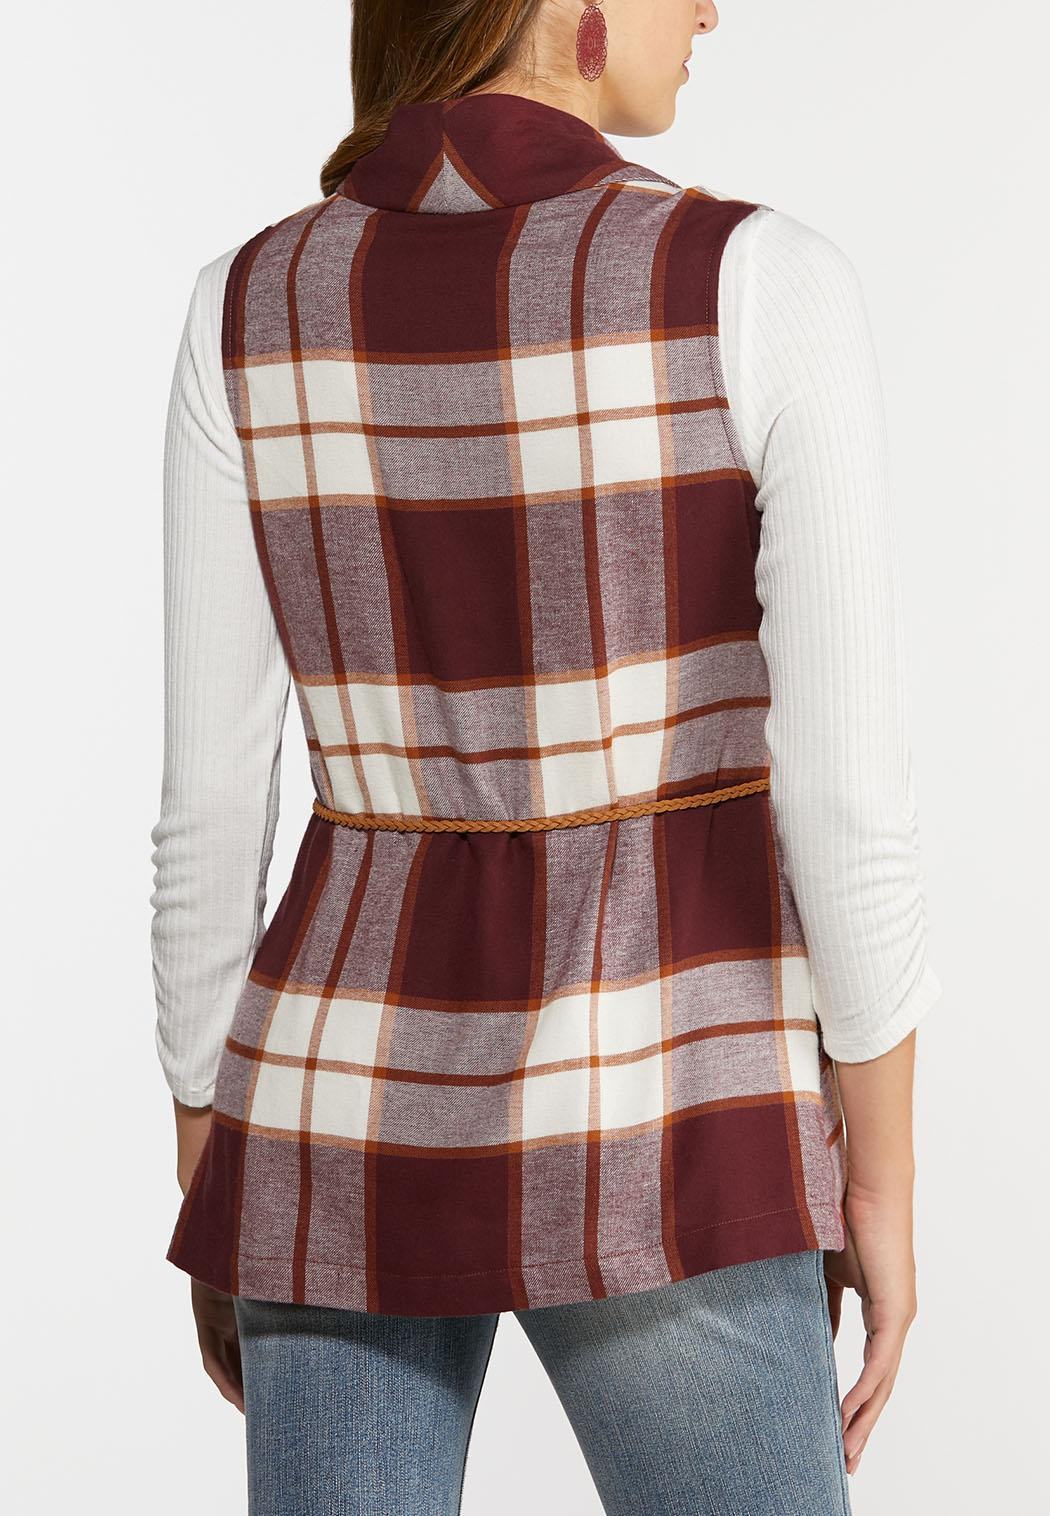 Belted Wine Plaid Vest (Item #44362292)